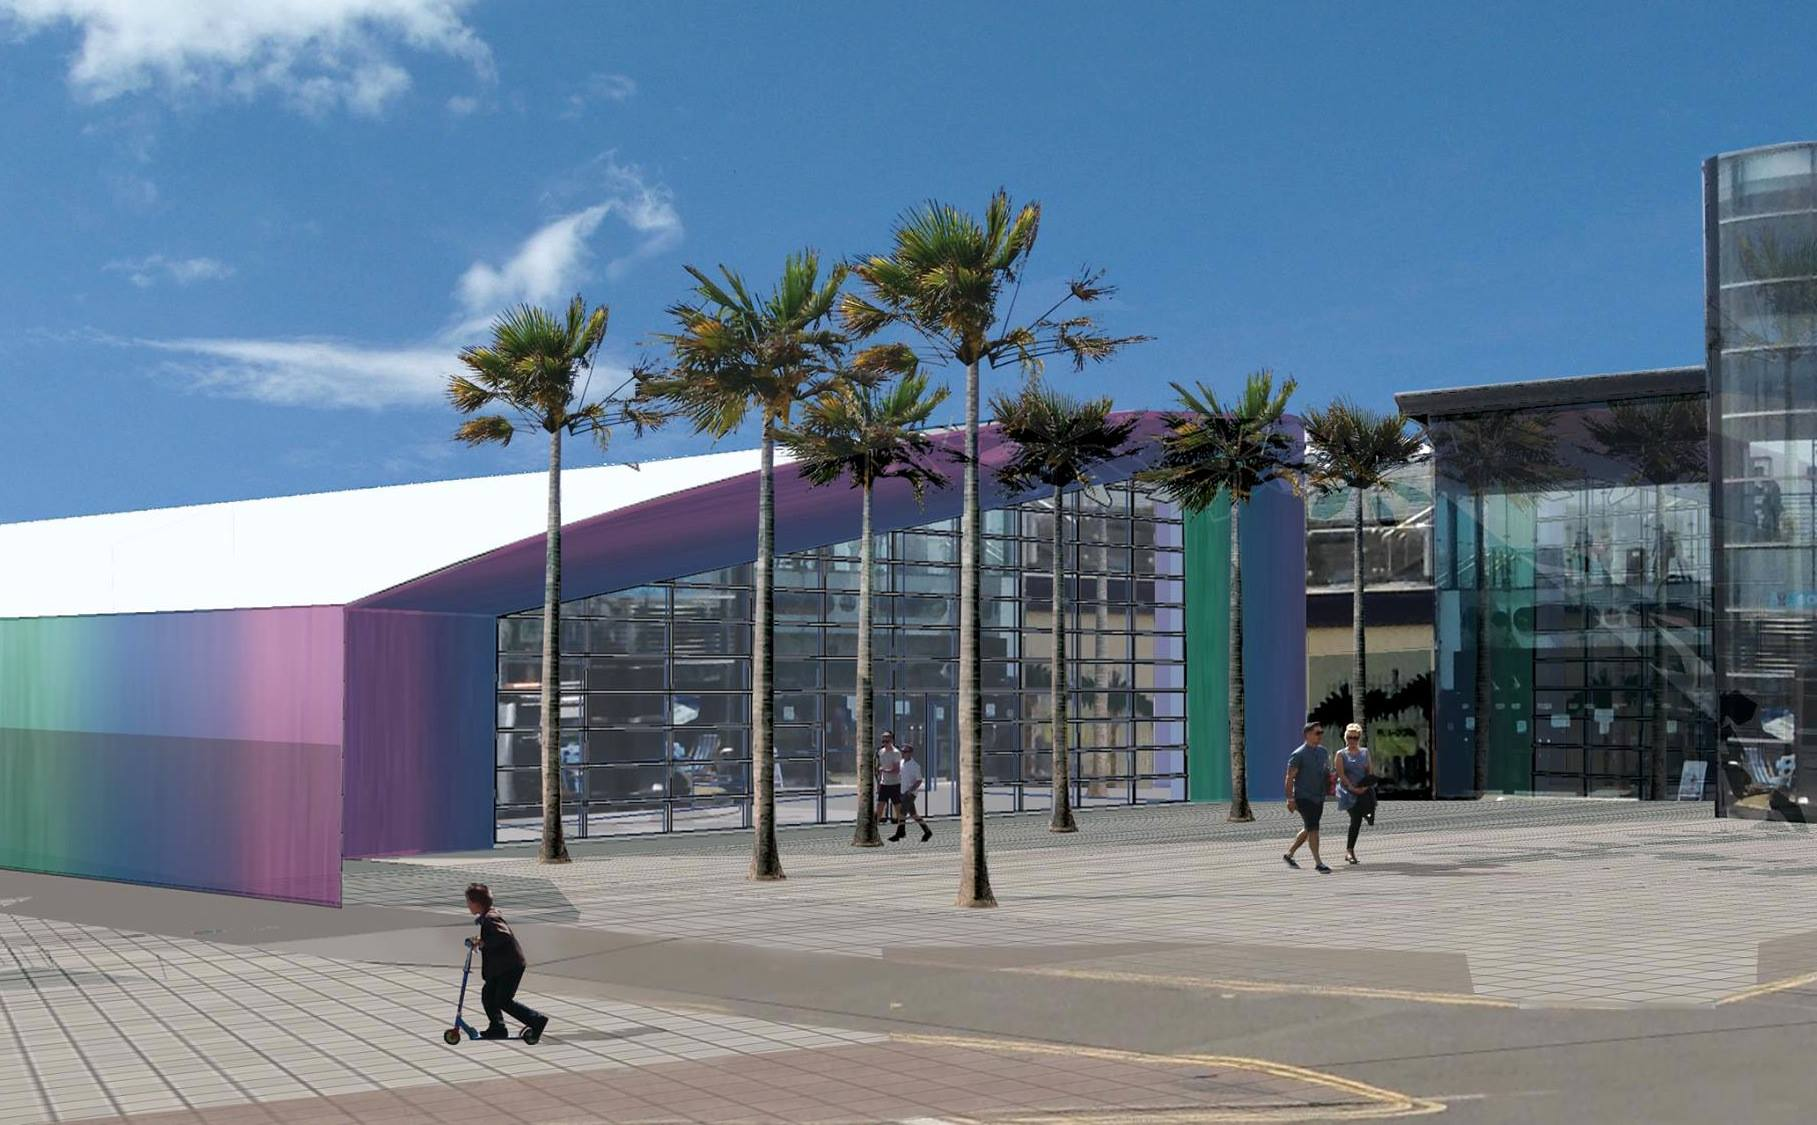 Indoor play centre plan for Southend's Adventure Island